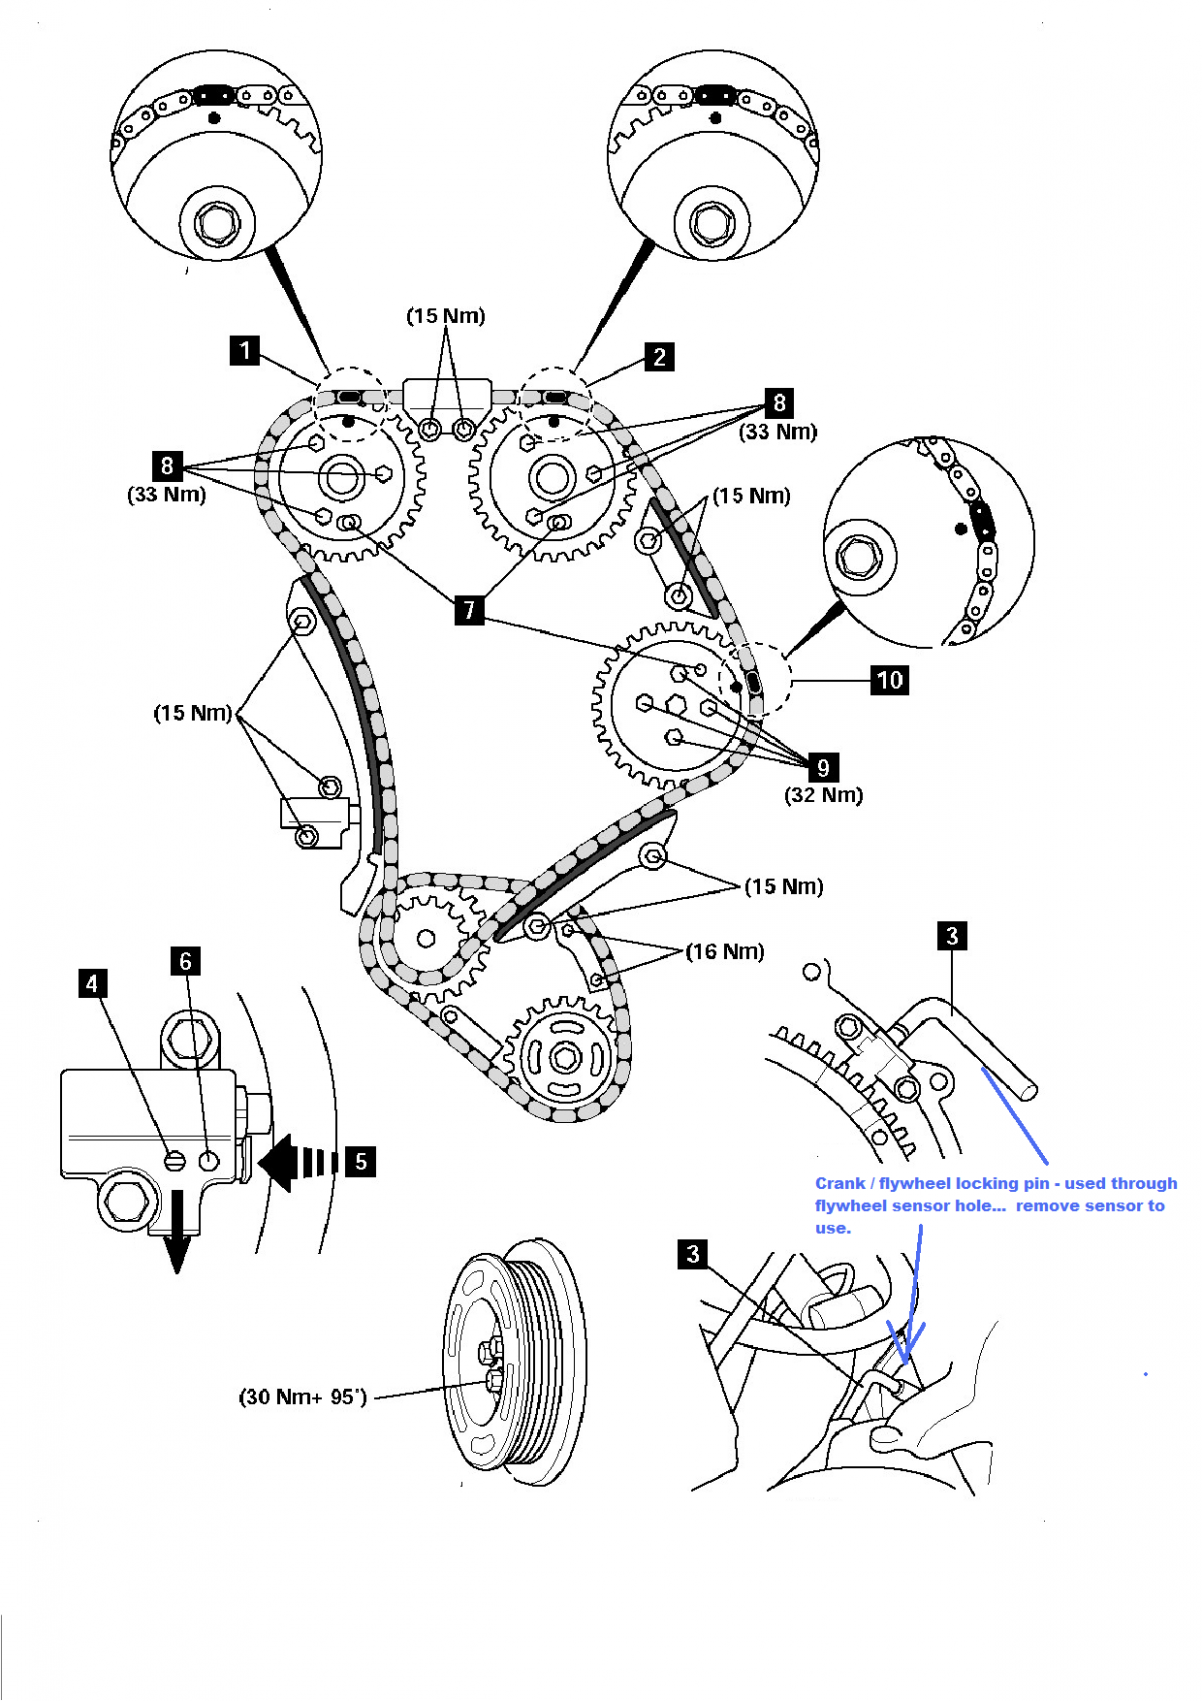 Engine Diagram Of The Timing Marks Engine Diagram Of The